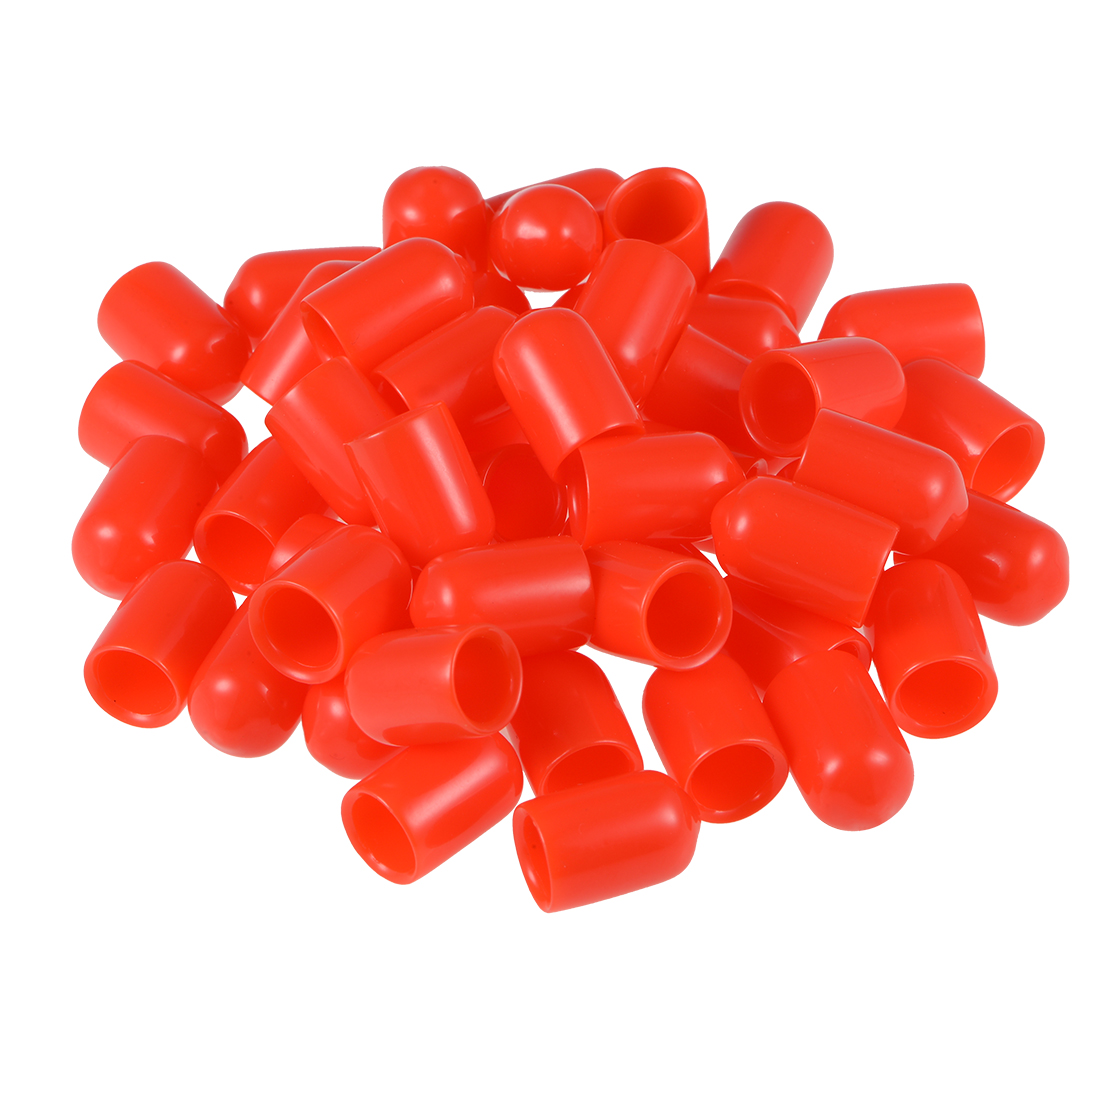 Screw Thread Protector, 8mm ID Round End Cap Cover Red Tube Caps 50pcs